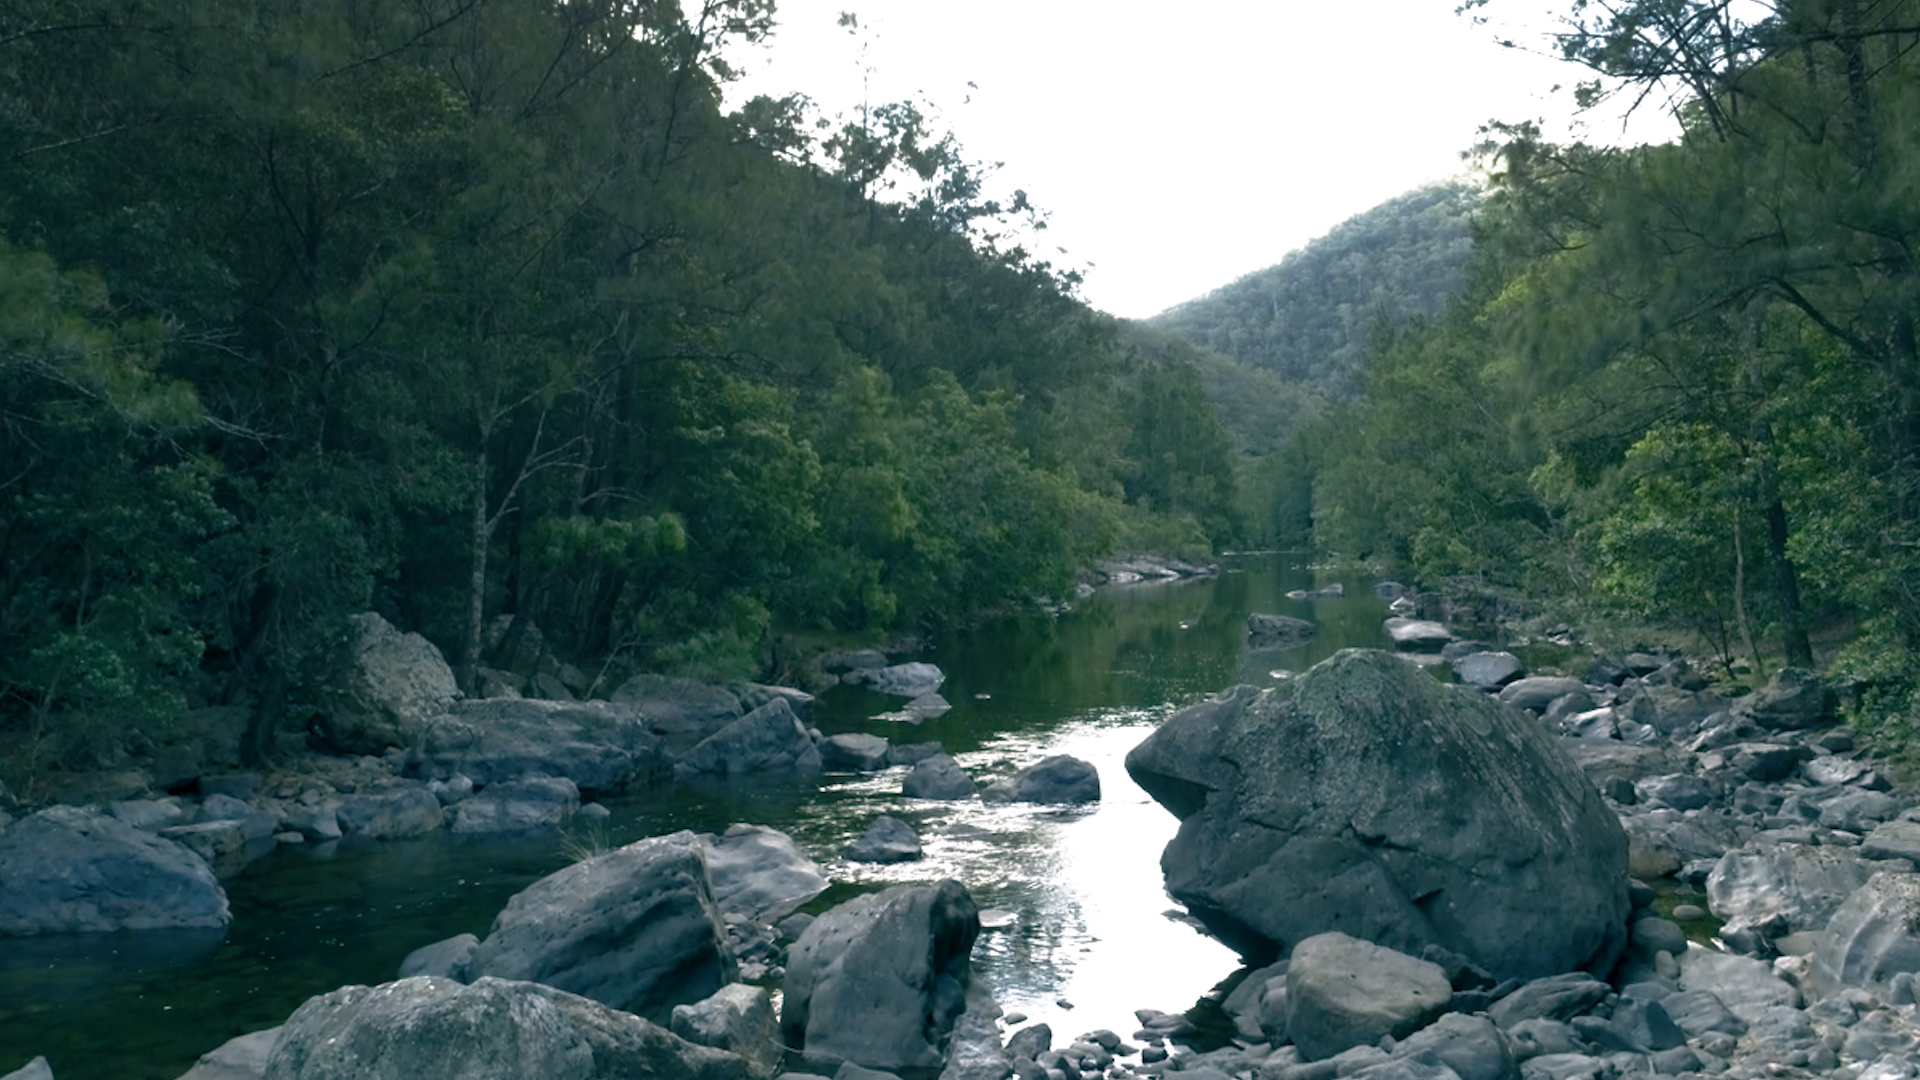 NSW Govt introduces law to allow flooding of World Heritage-listed Blue Mountains National Park